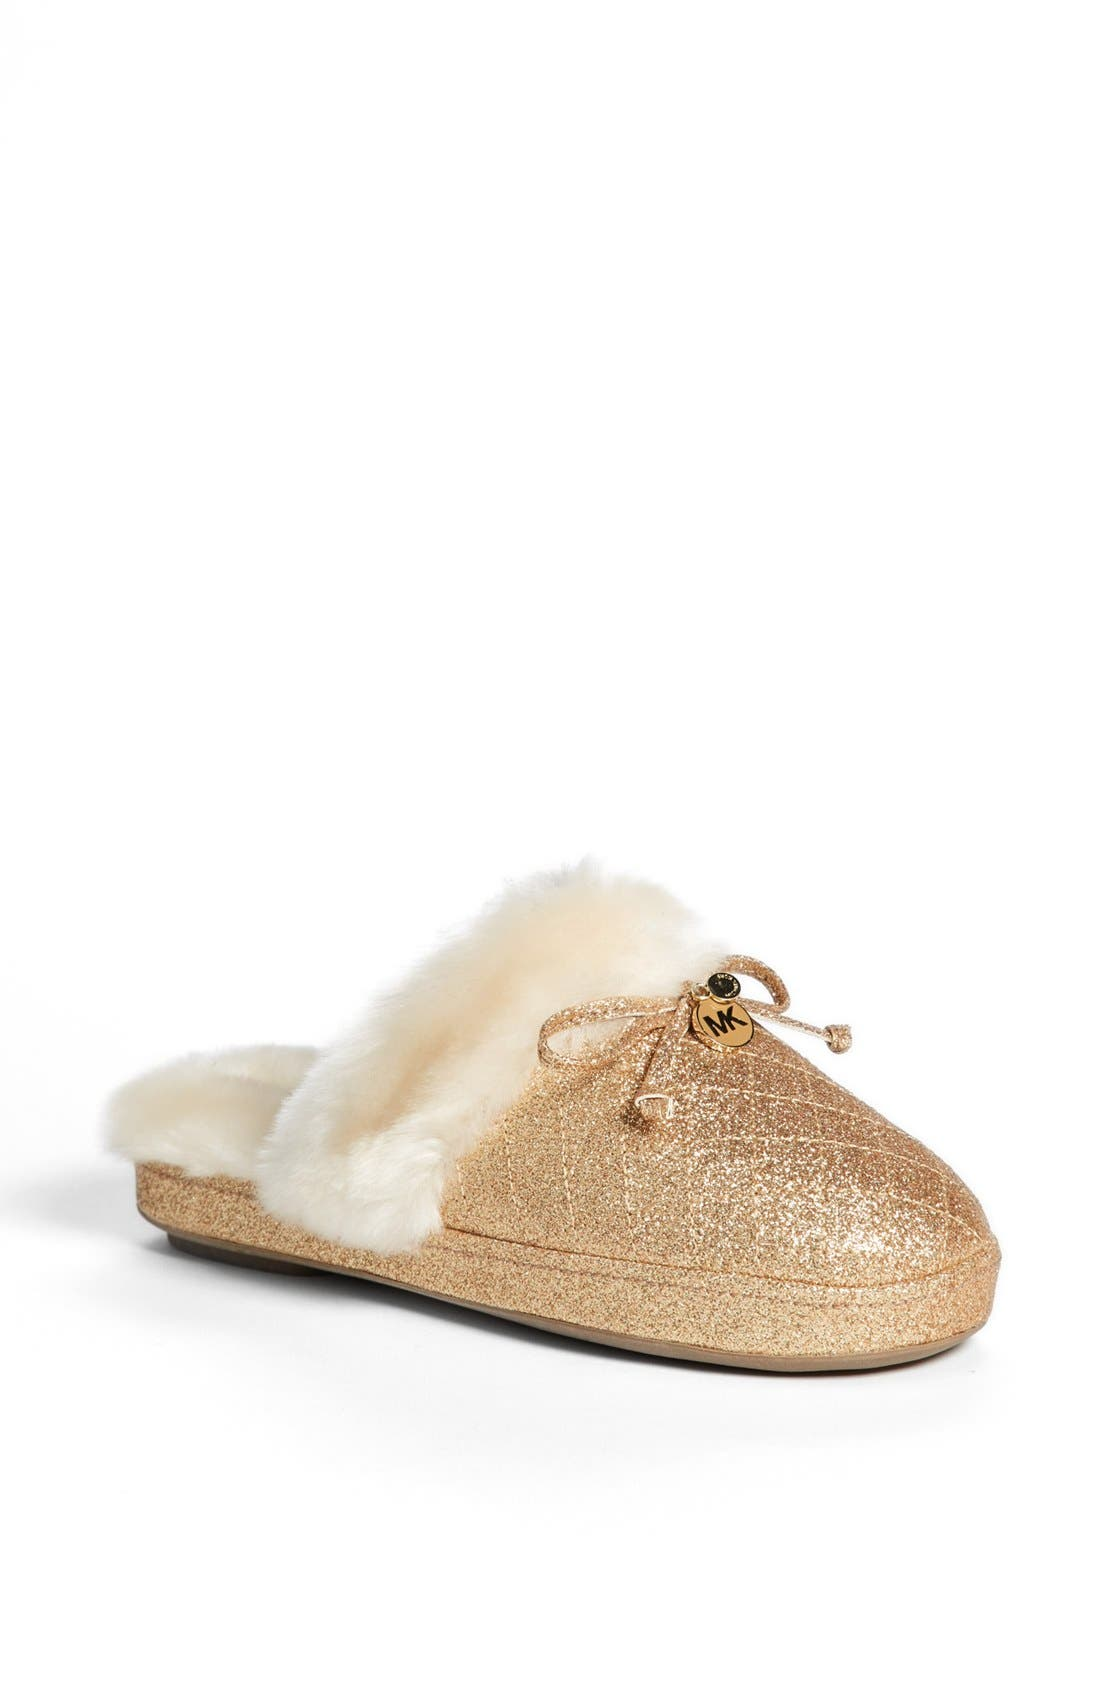 Alternate Image 1 Selected - MICHAEL Michael Kors 'Carter' Slipper